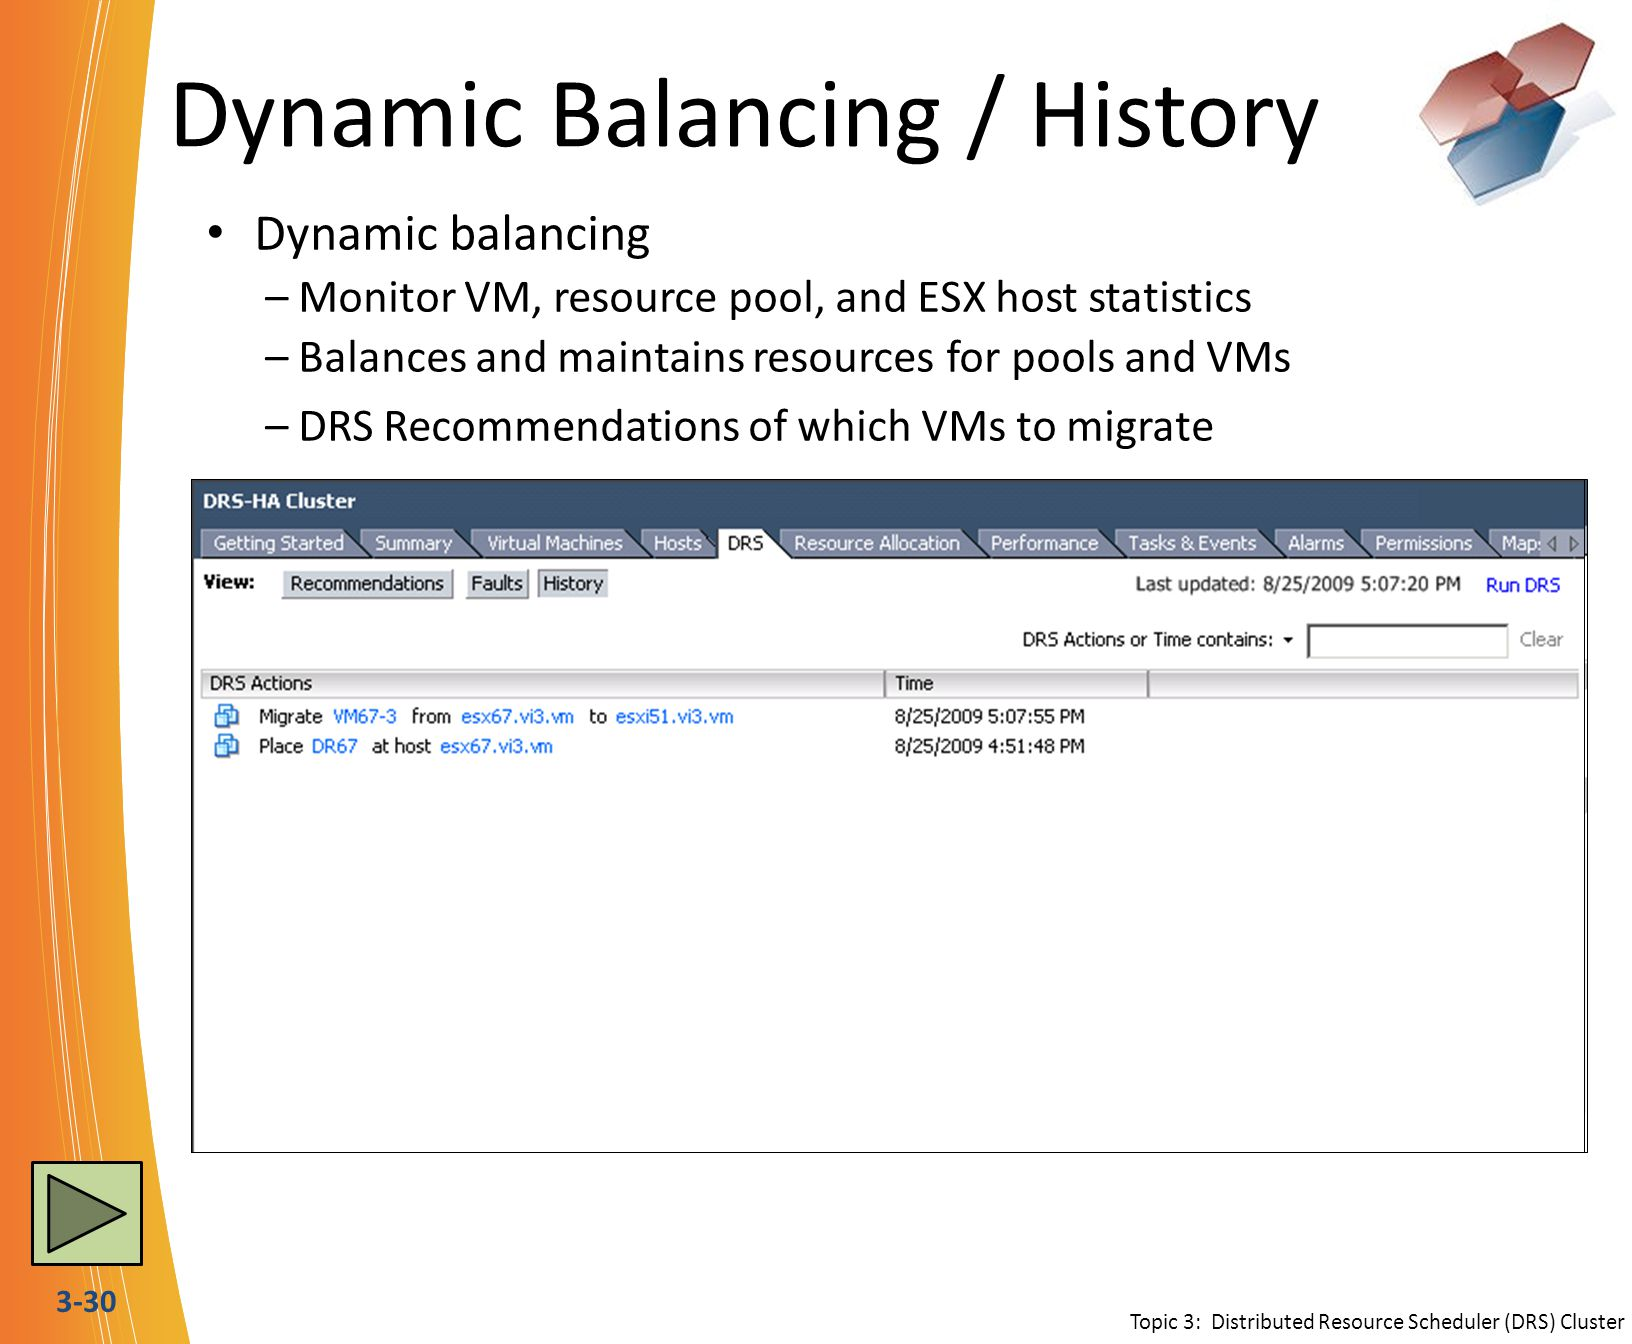 3-30 Dynamic Balancing / History Dynamic balancing –Monitor VM, resource pool, and ESX host statistics –Balances and maintains resources for pools and VMs –DRS Recommendations of which VMs to migrate Topic 3: Distributed Resource Scheduler (DRS) Cluster